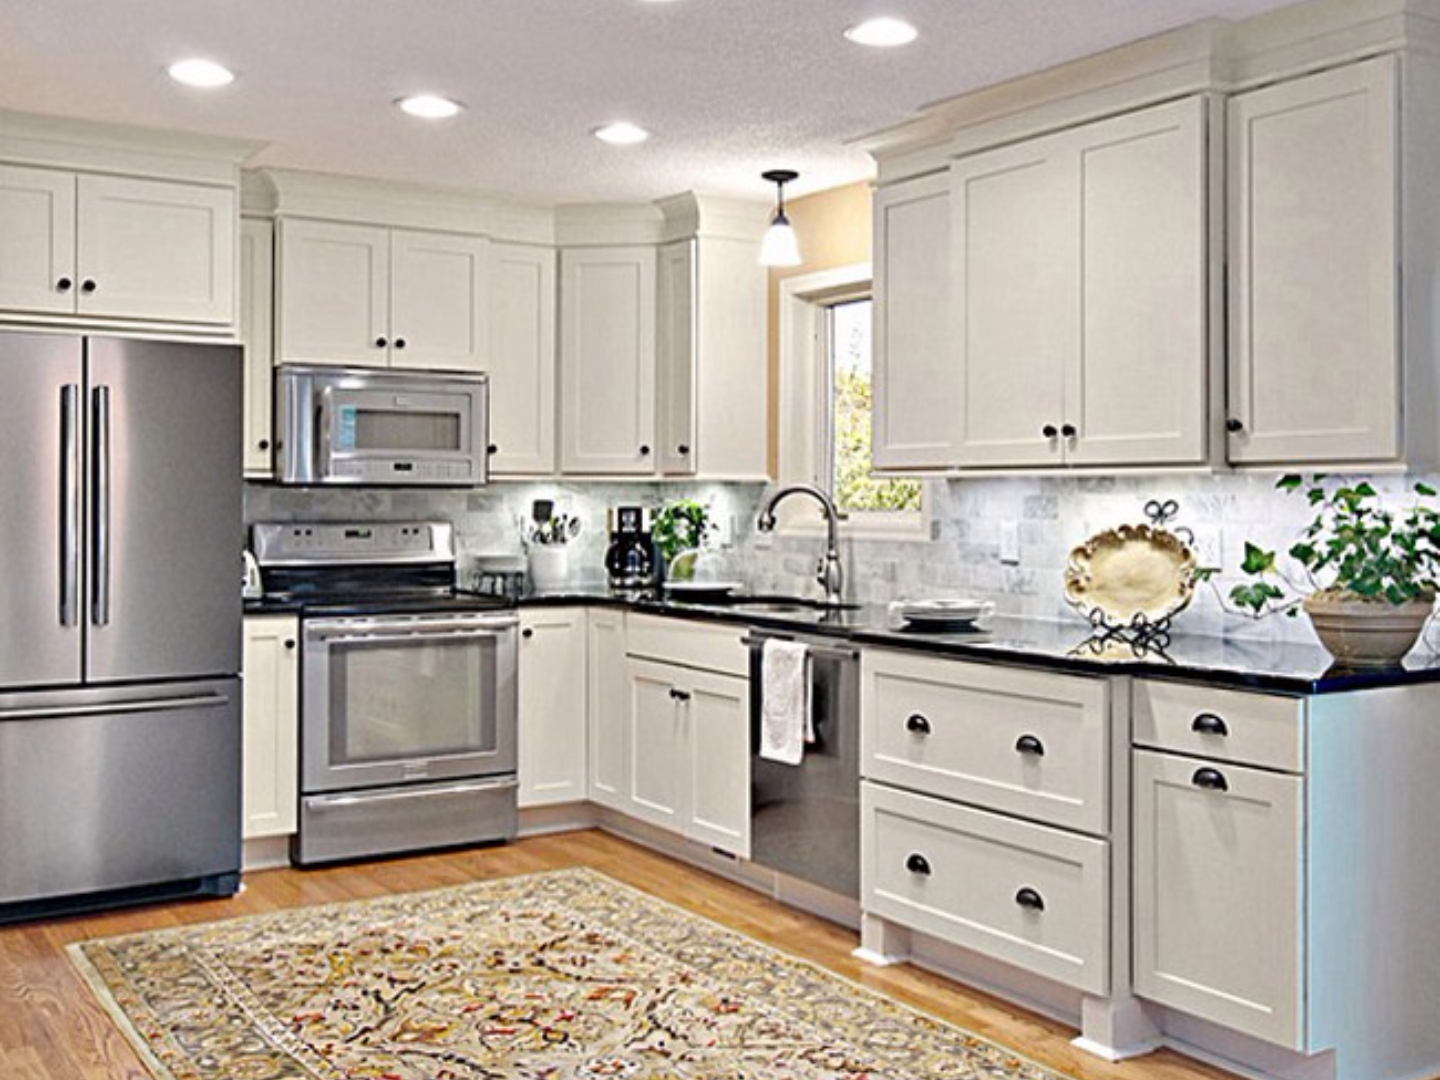 painting kitchen cabinets white yourself cabinet refinishing castle rock cabinets refinishing and 24480